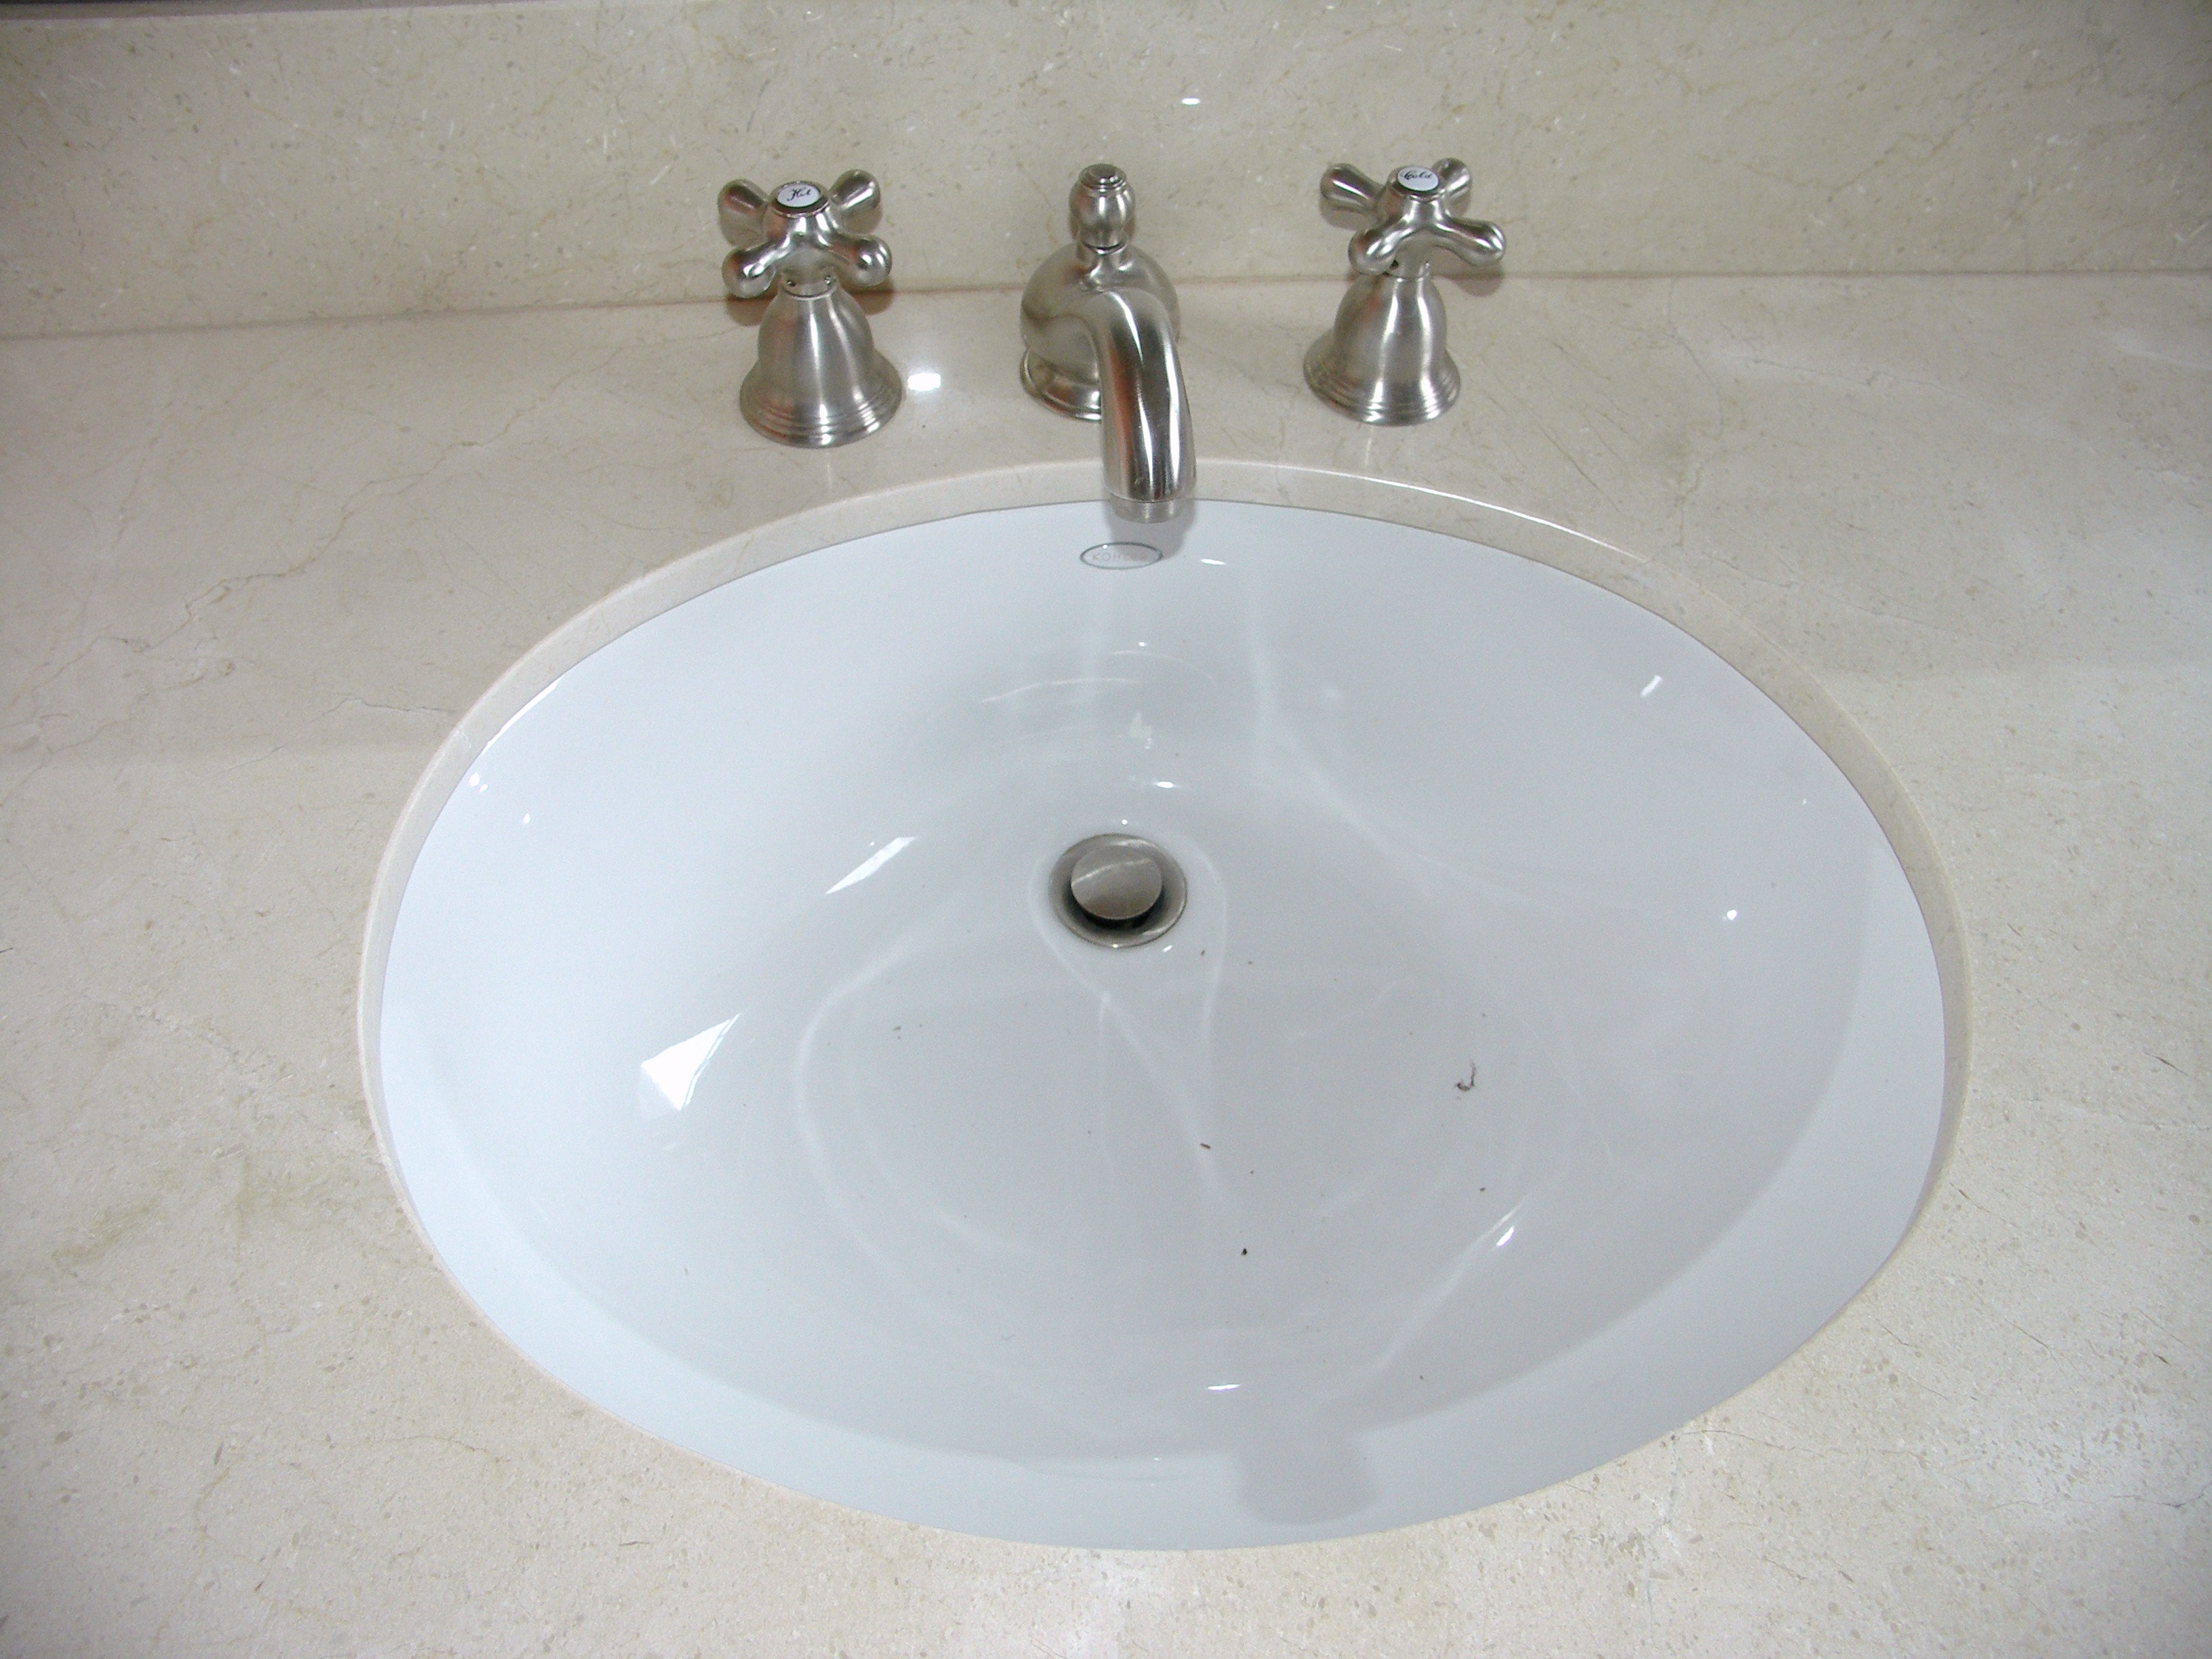 Undermount Sink Pictures : Undermount Sink with Widespread Faucet